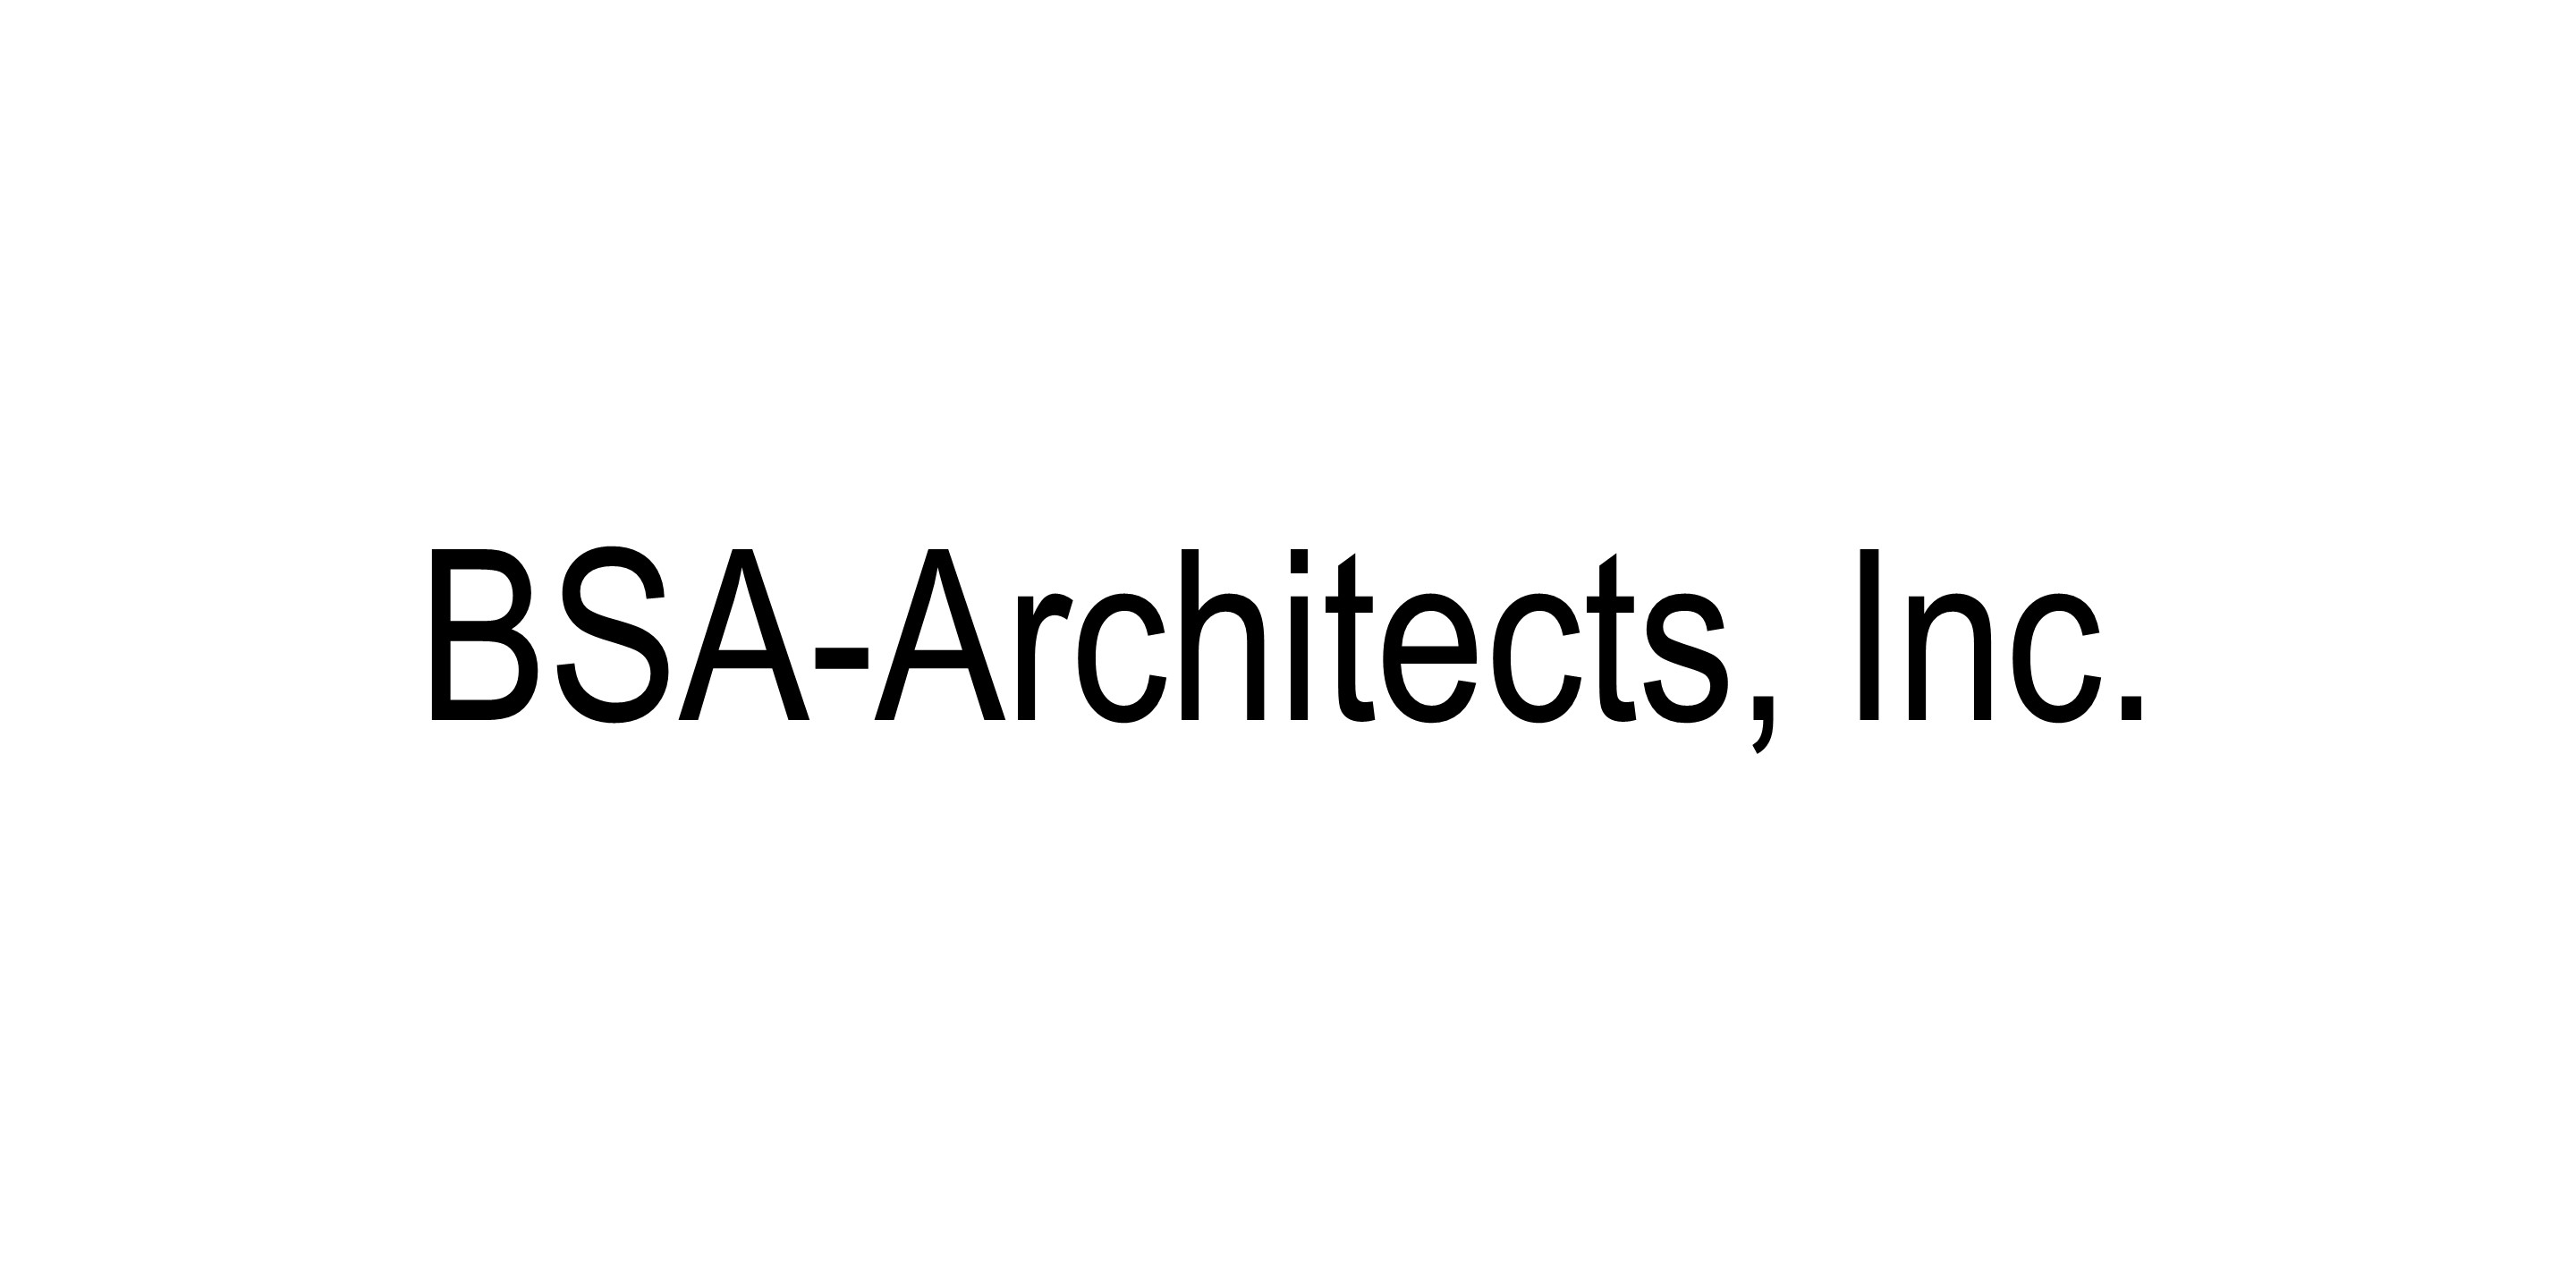 BSA Architects, Inc. logo